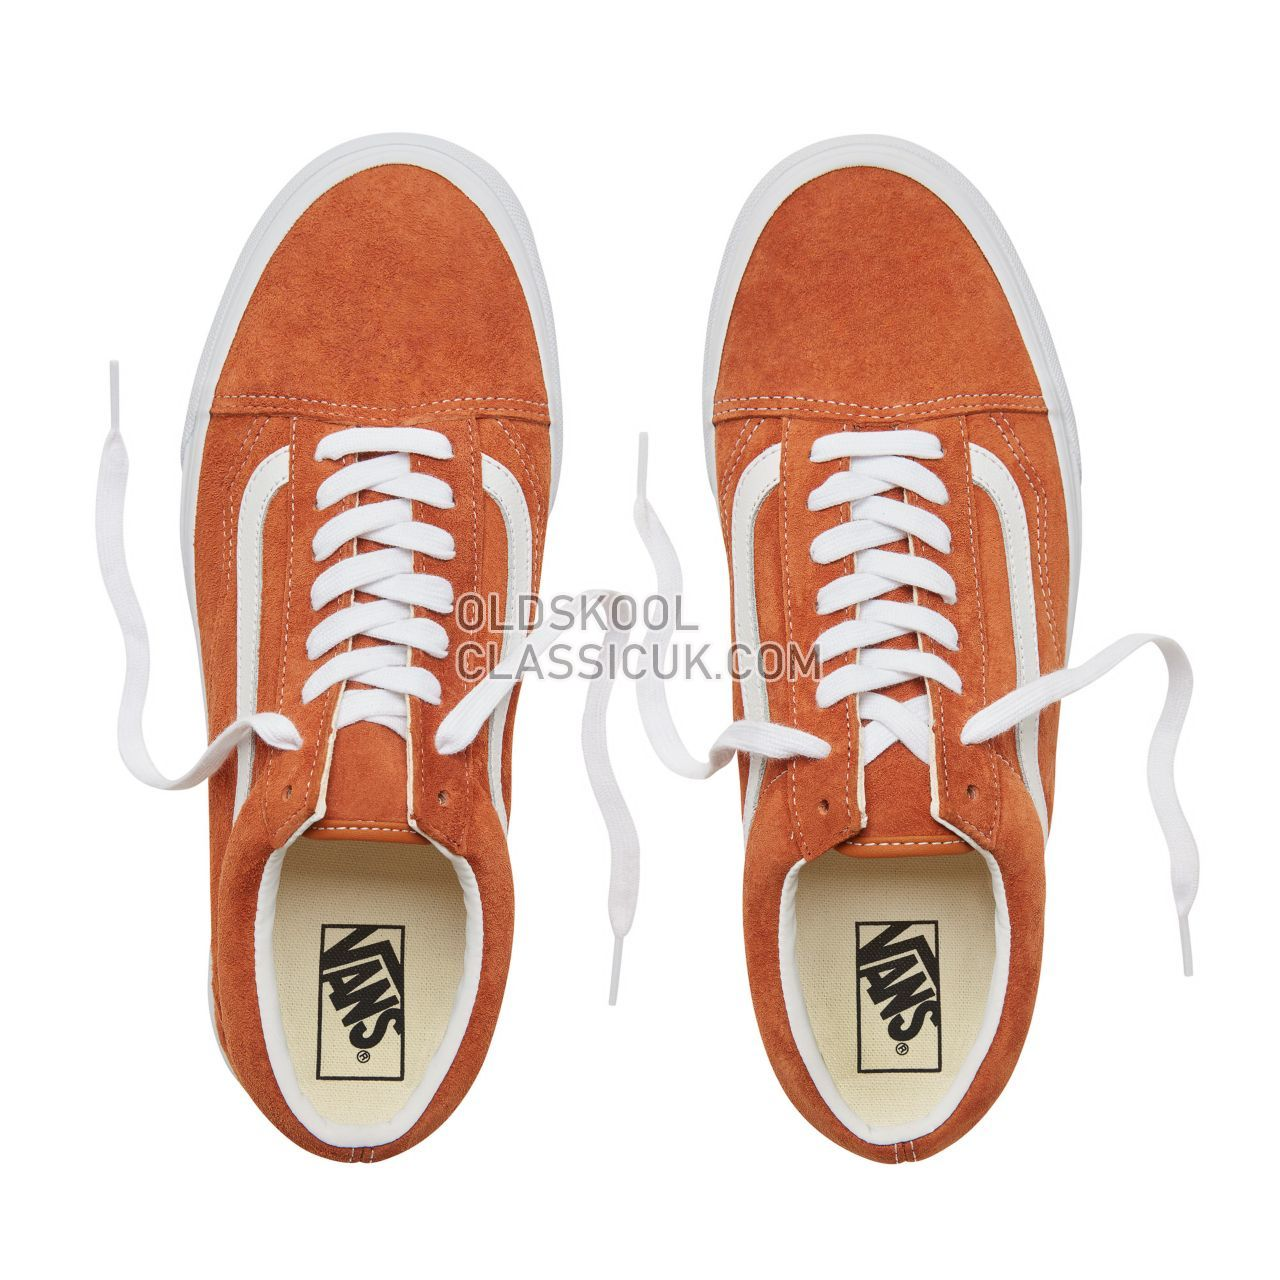 Vans Suede Old Skool Sneakers Mens Womens Unisex (Pig Suede) Leather Brown/True White VA38G1U5K Shoes